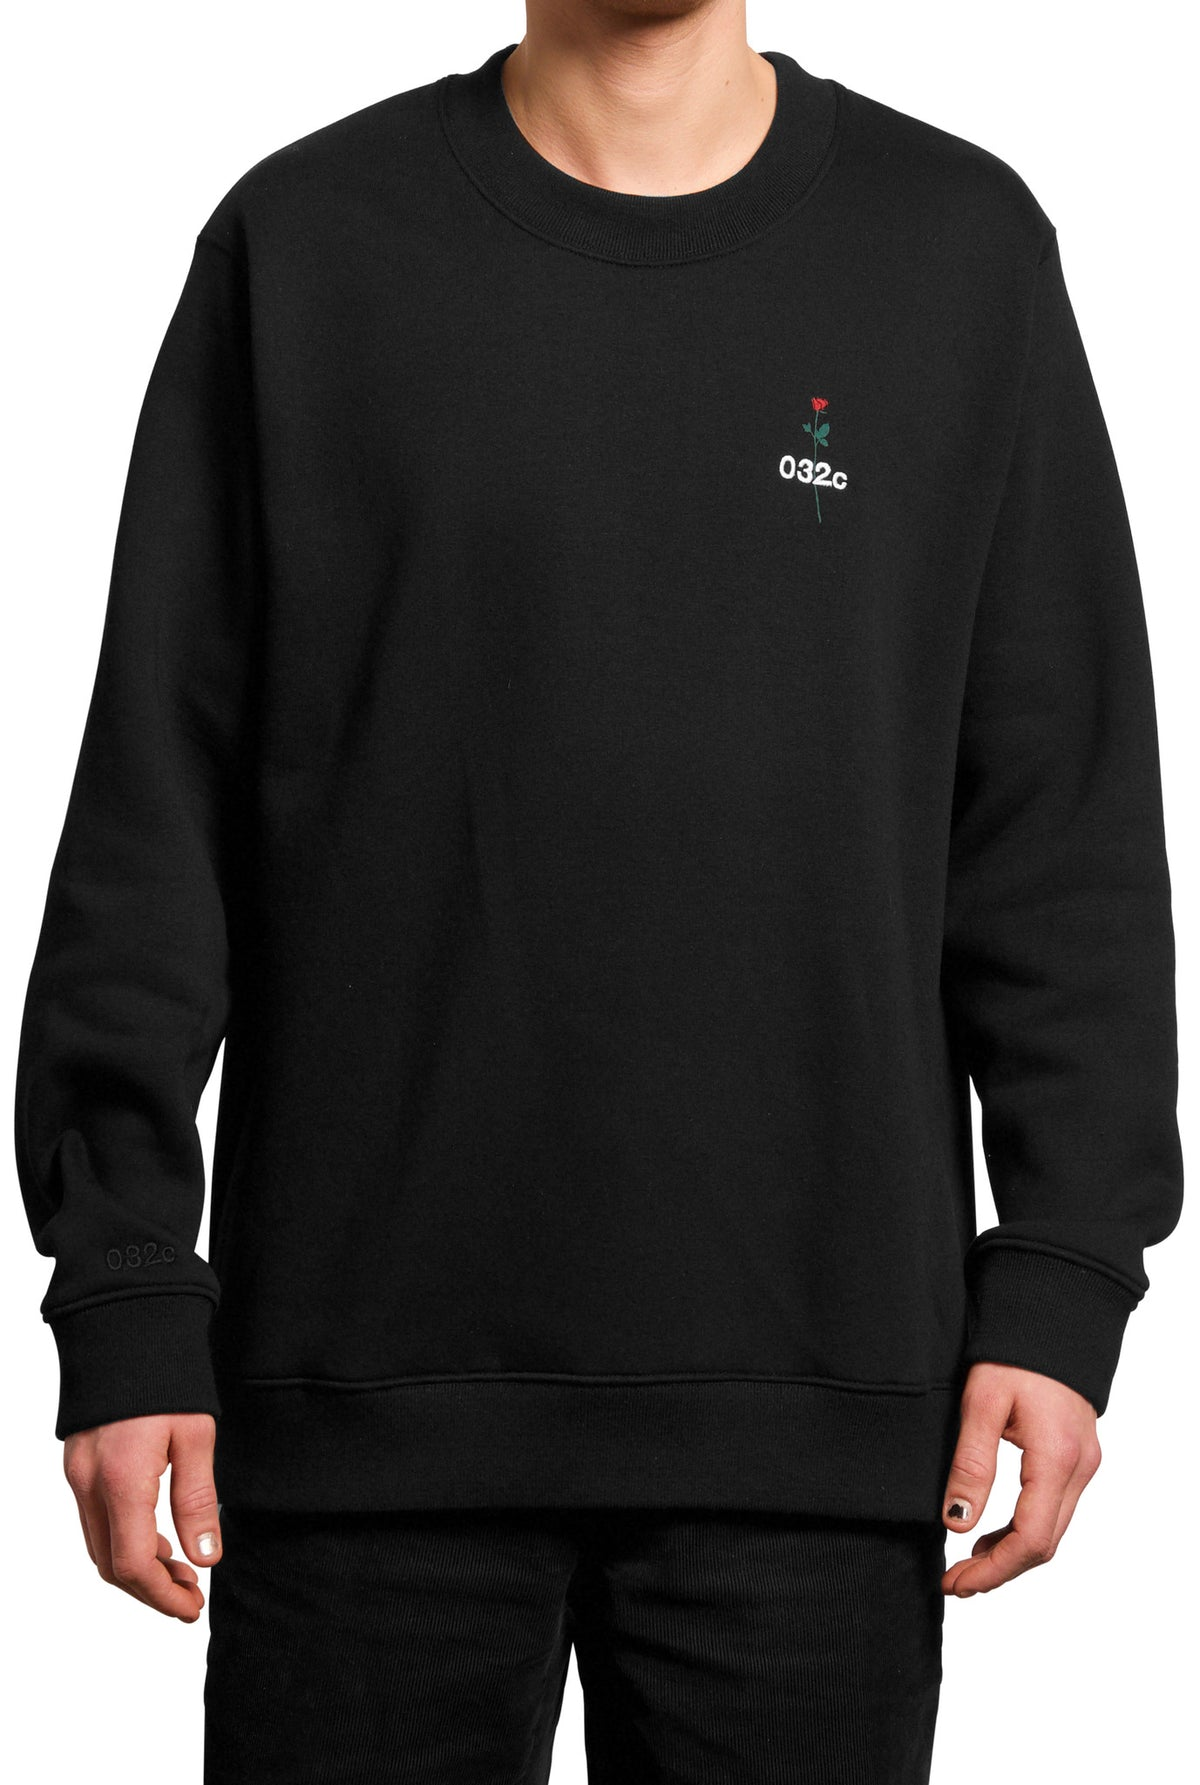 032c Don't Dream It's Over Sweatshirt